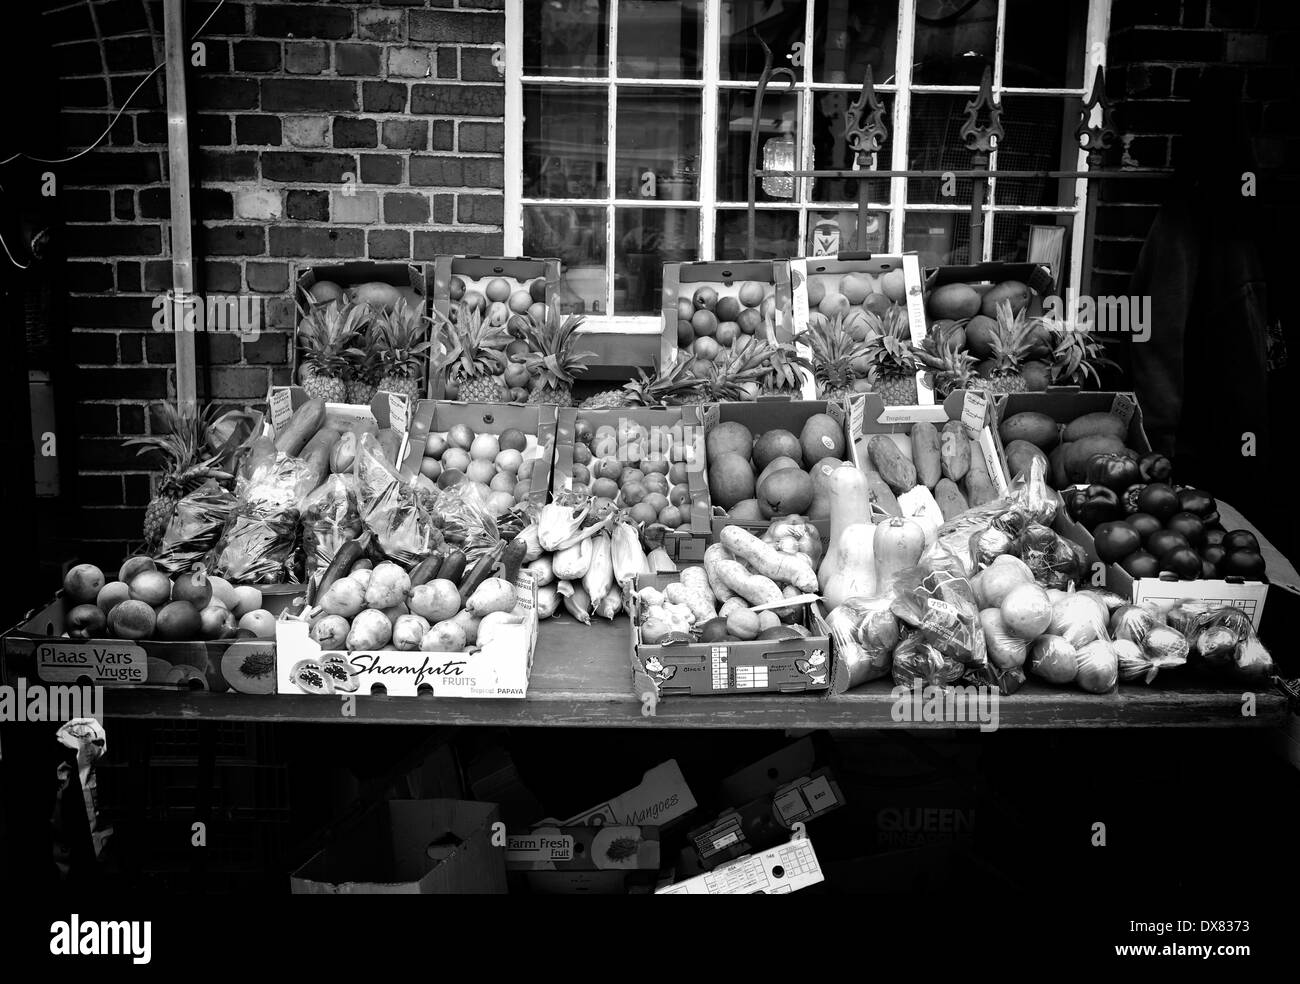 Black and white photograph of assortment of fresh fruits and vegetables for sale at Kalk Bay, near Cape Town. - Stock Image